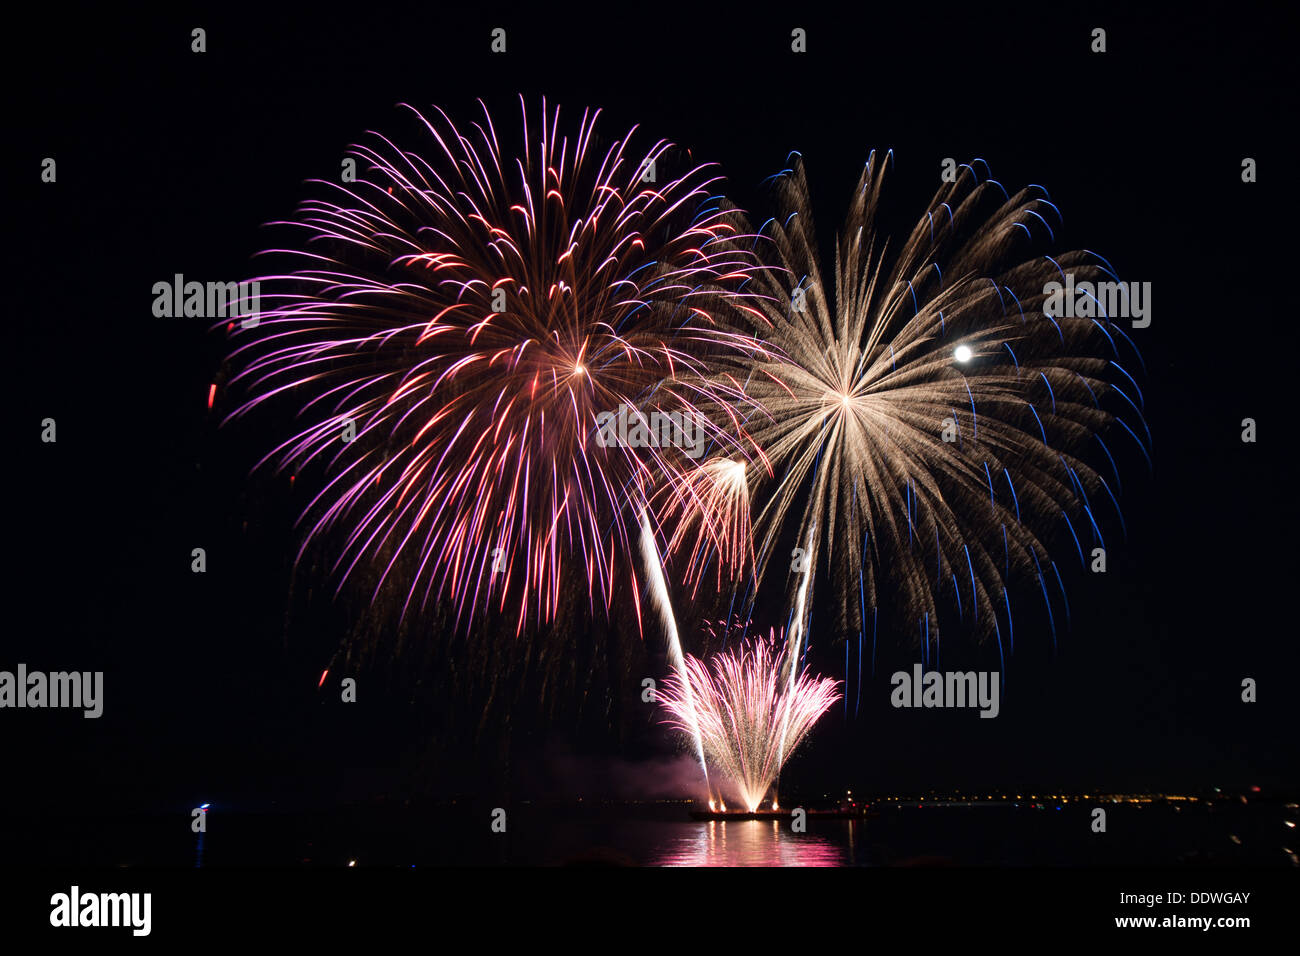 fire works fire crackers at night over the water - Stock Image